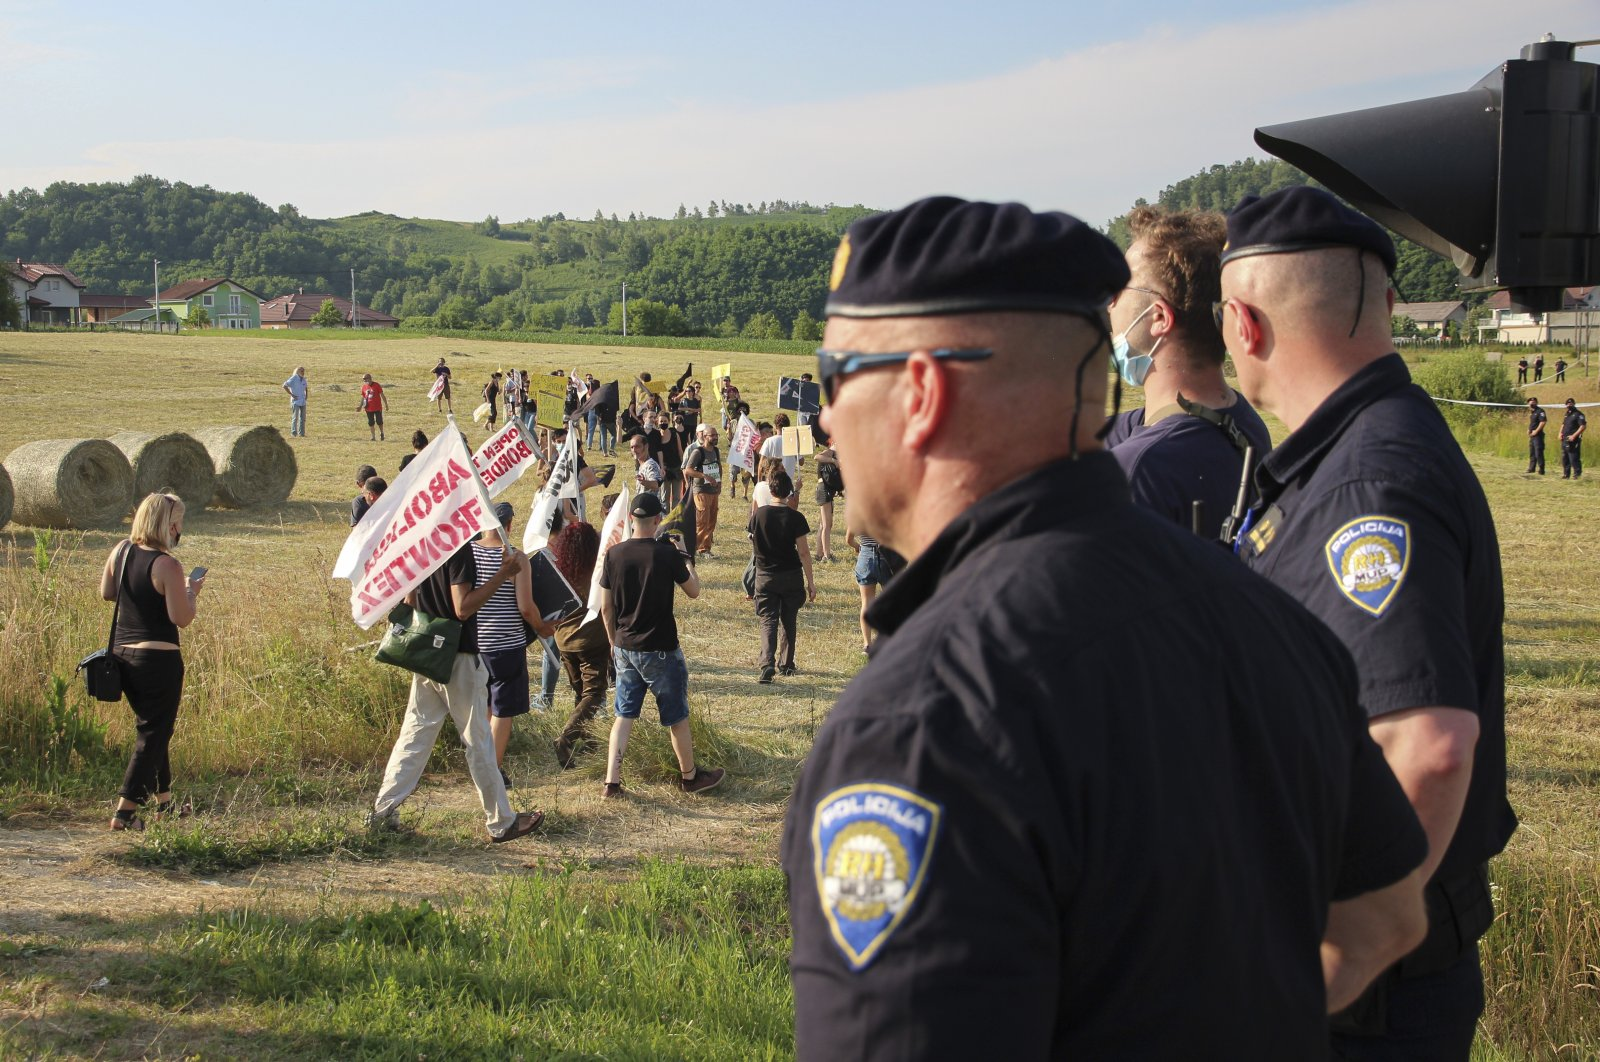 Croatian police officers stand as people walk with banners during a protest against the violent pushbacks of migrants, allegedly conducted by Croatian police, near the border crossing between Croatia and Bosnia Herzegovina in Maljevac, Croatia, June 19, 2021. (AP File Photo)